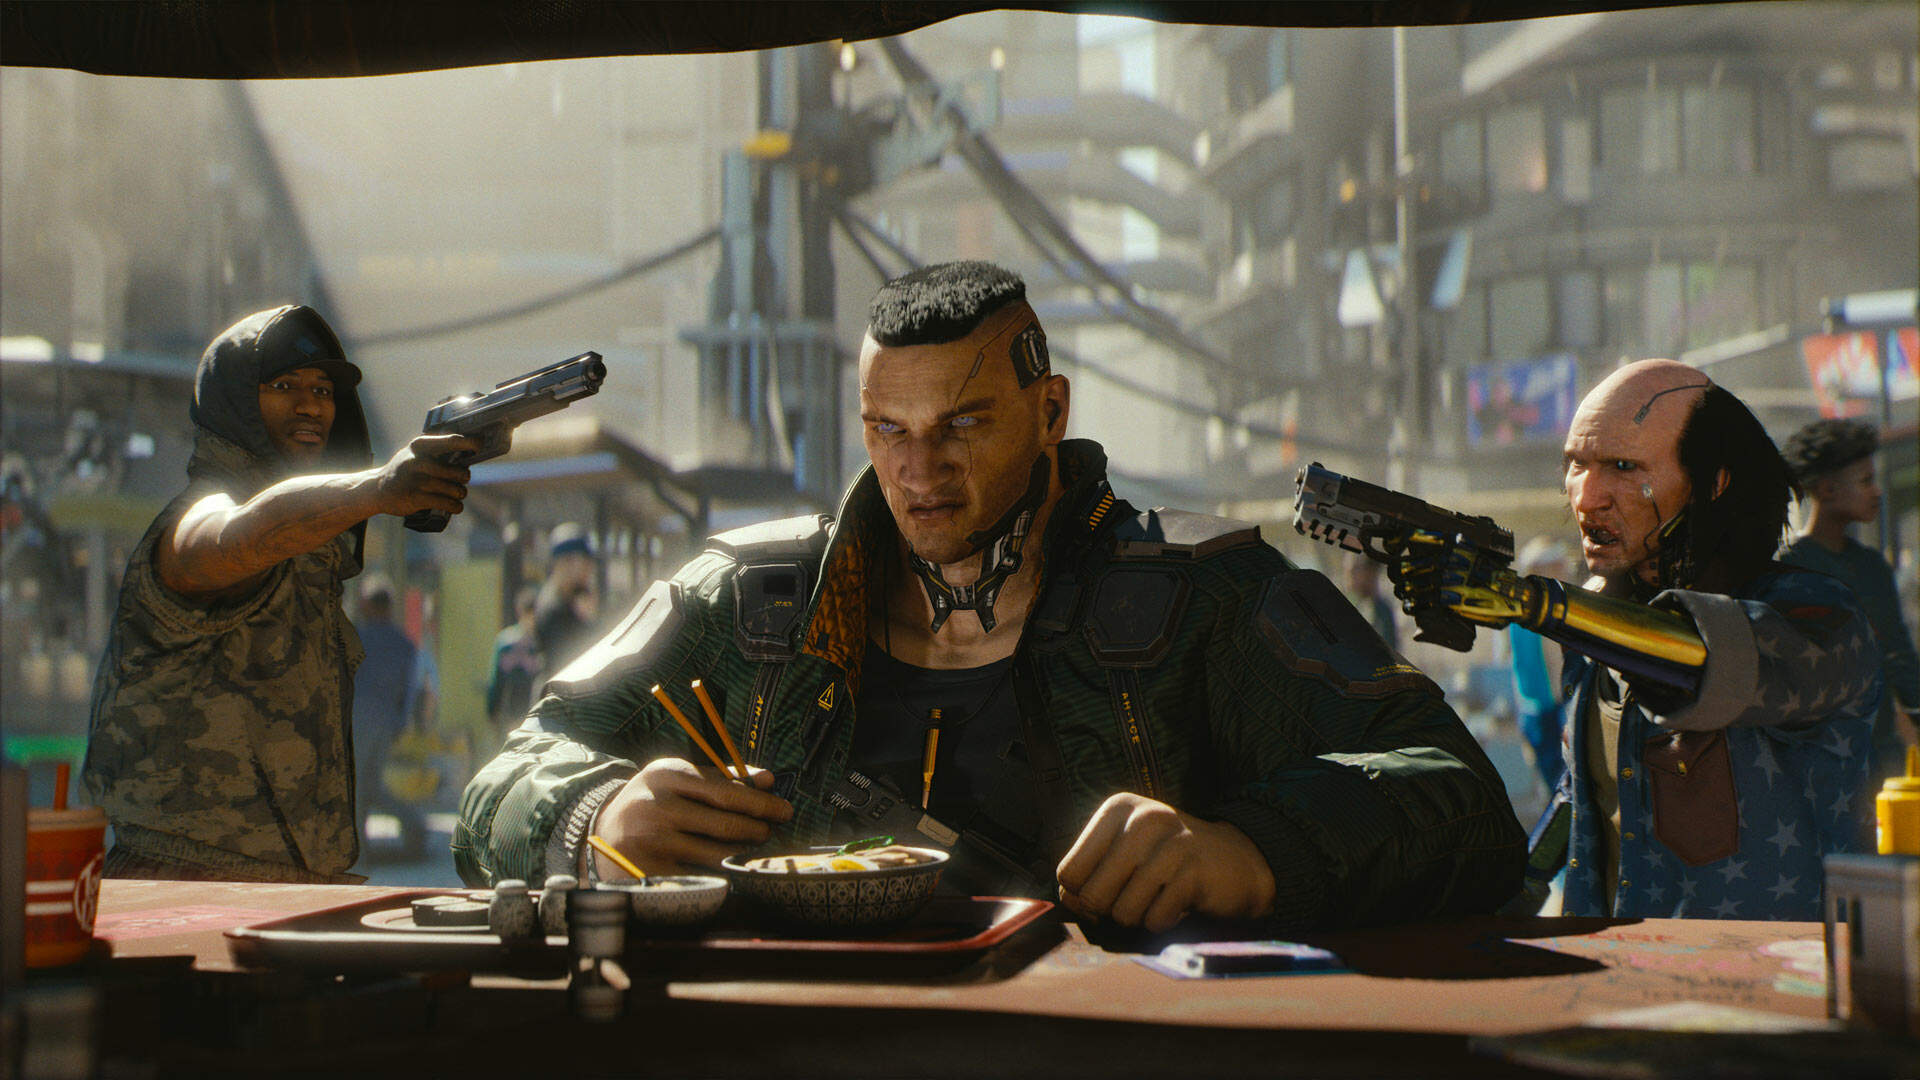 Cyberpunk Pioneer William Gibson Casually Destroys Cyberpunk 2077, Calls its Aesthetic Generic